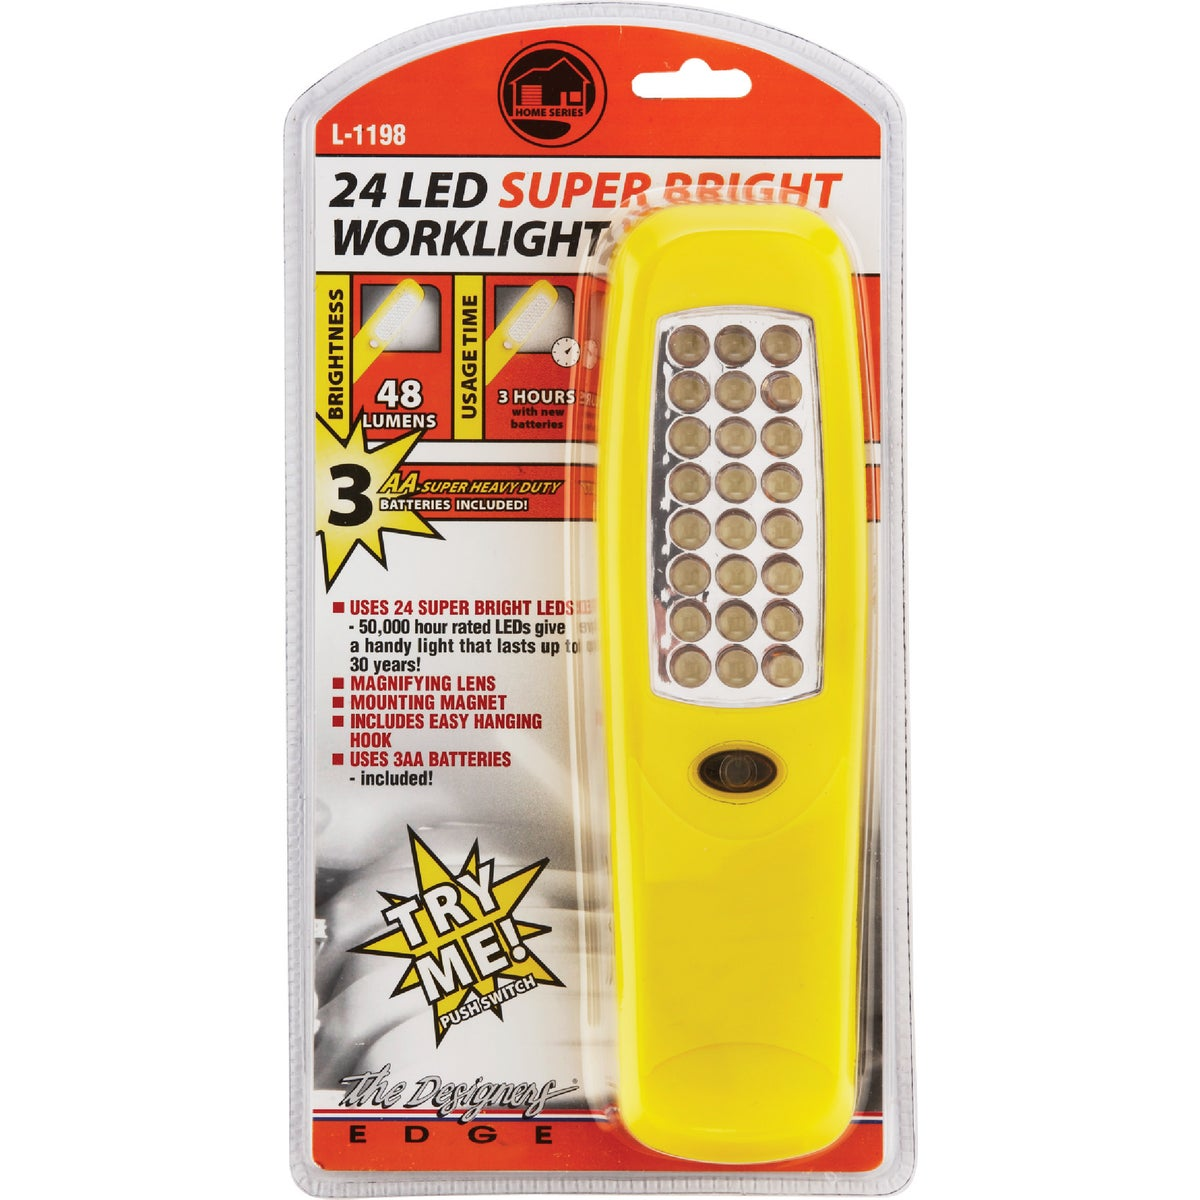 24 LED WORKLIGHT - L-1198 by Woods Wire Coleman